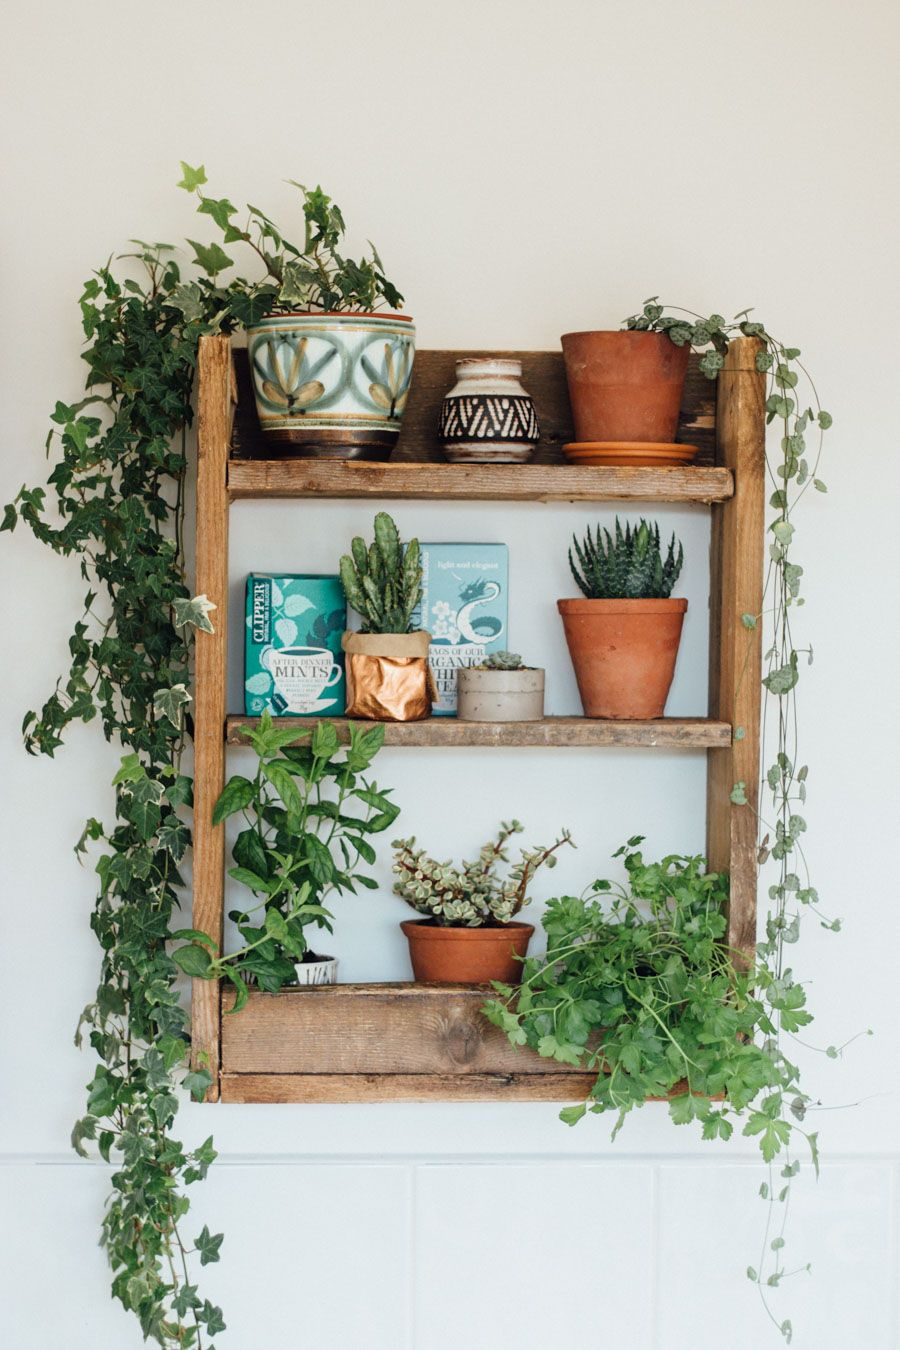 A Beautiful And Simple Kitchen Shelf Made From Rustic Pallet Wood To Hold Herbs Capture The Fascinating Magic Of Plants Botanical Shelving